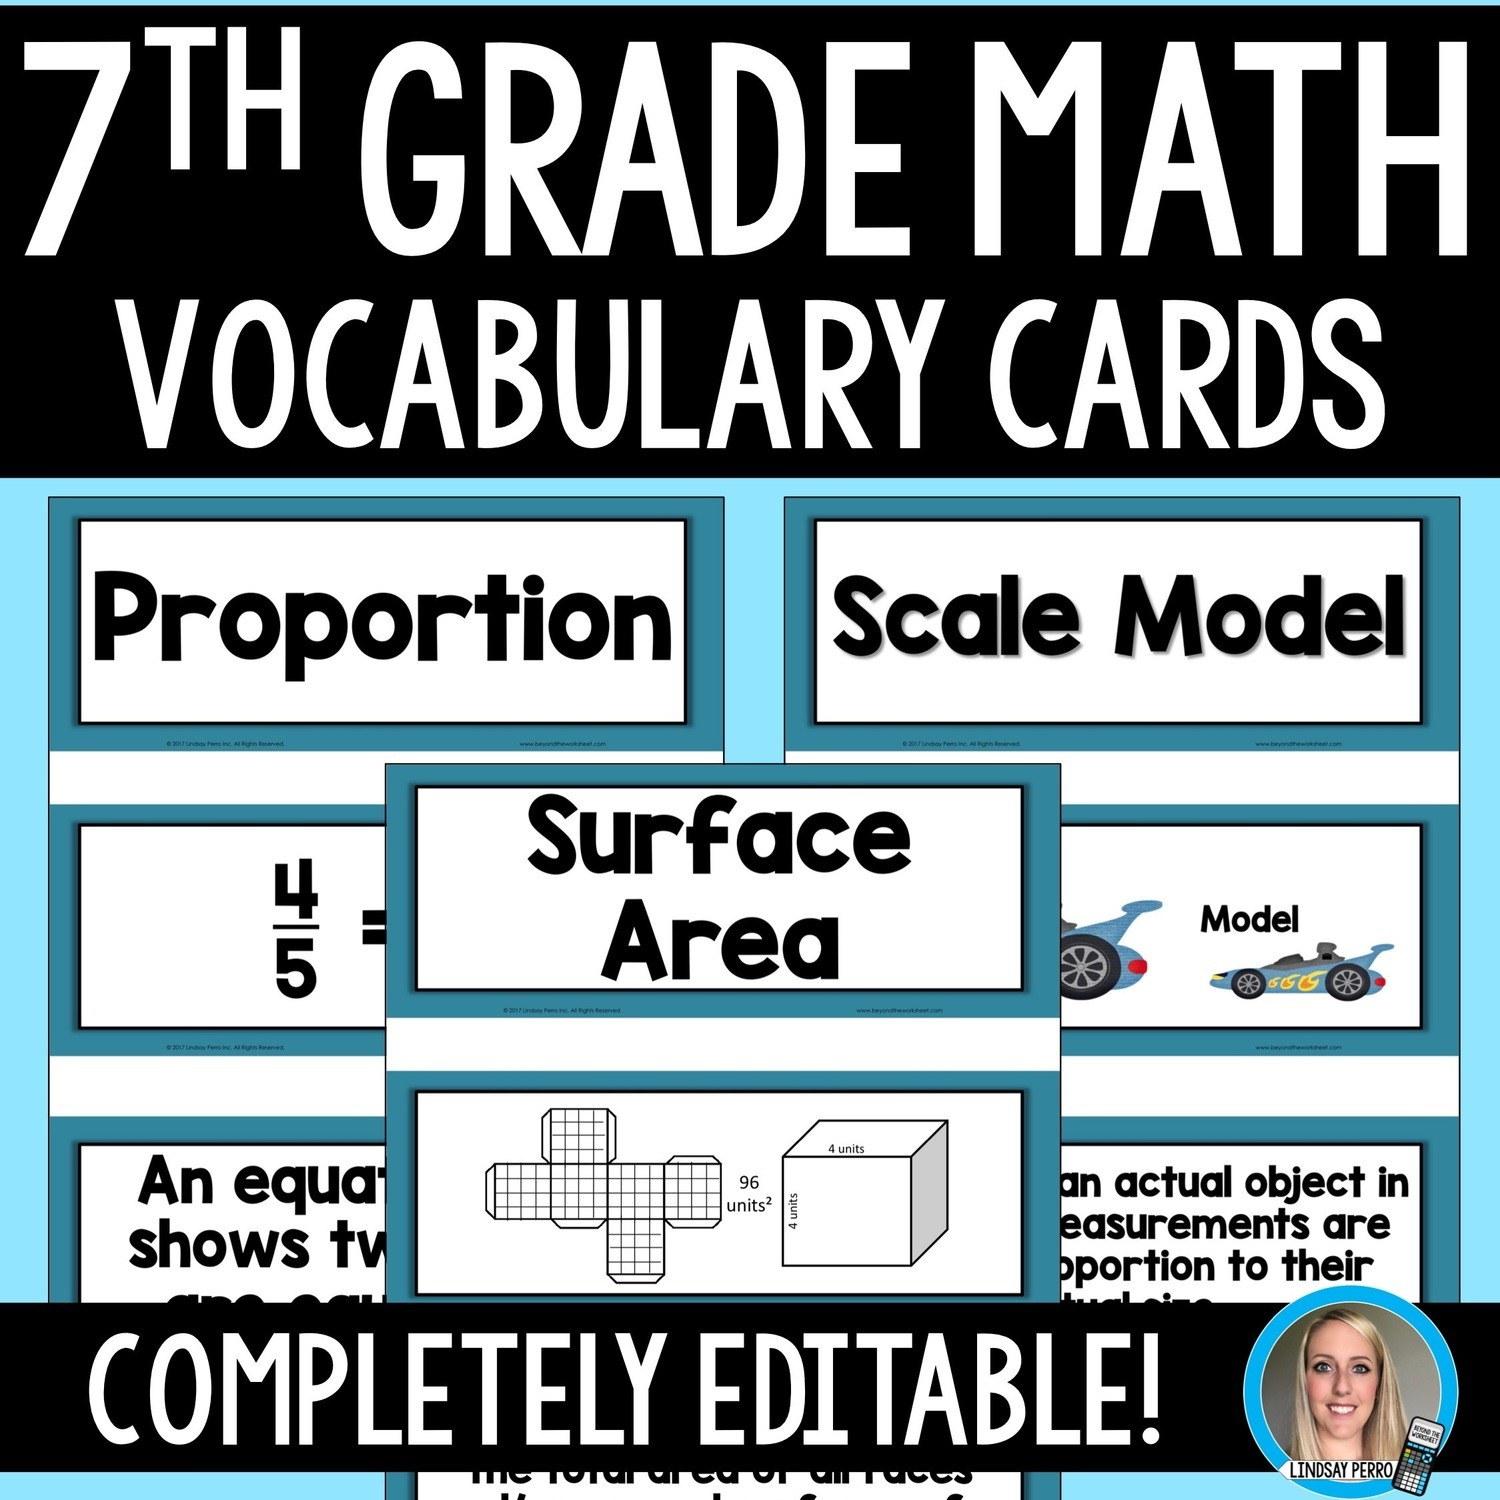 small resolution of 7th Grade Math Vocabulary Cards   Store - Lindsay Perro